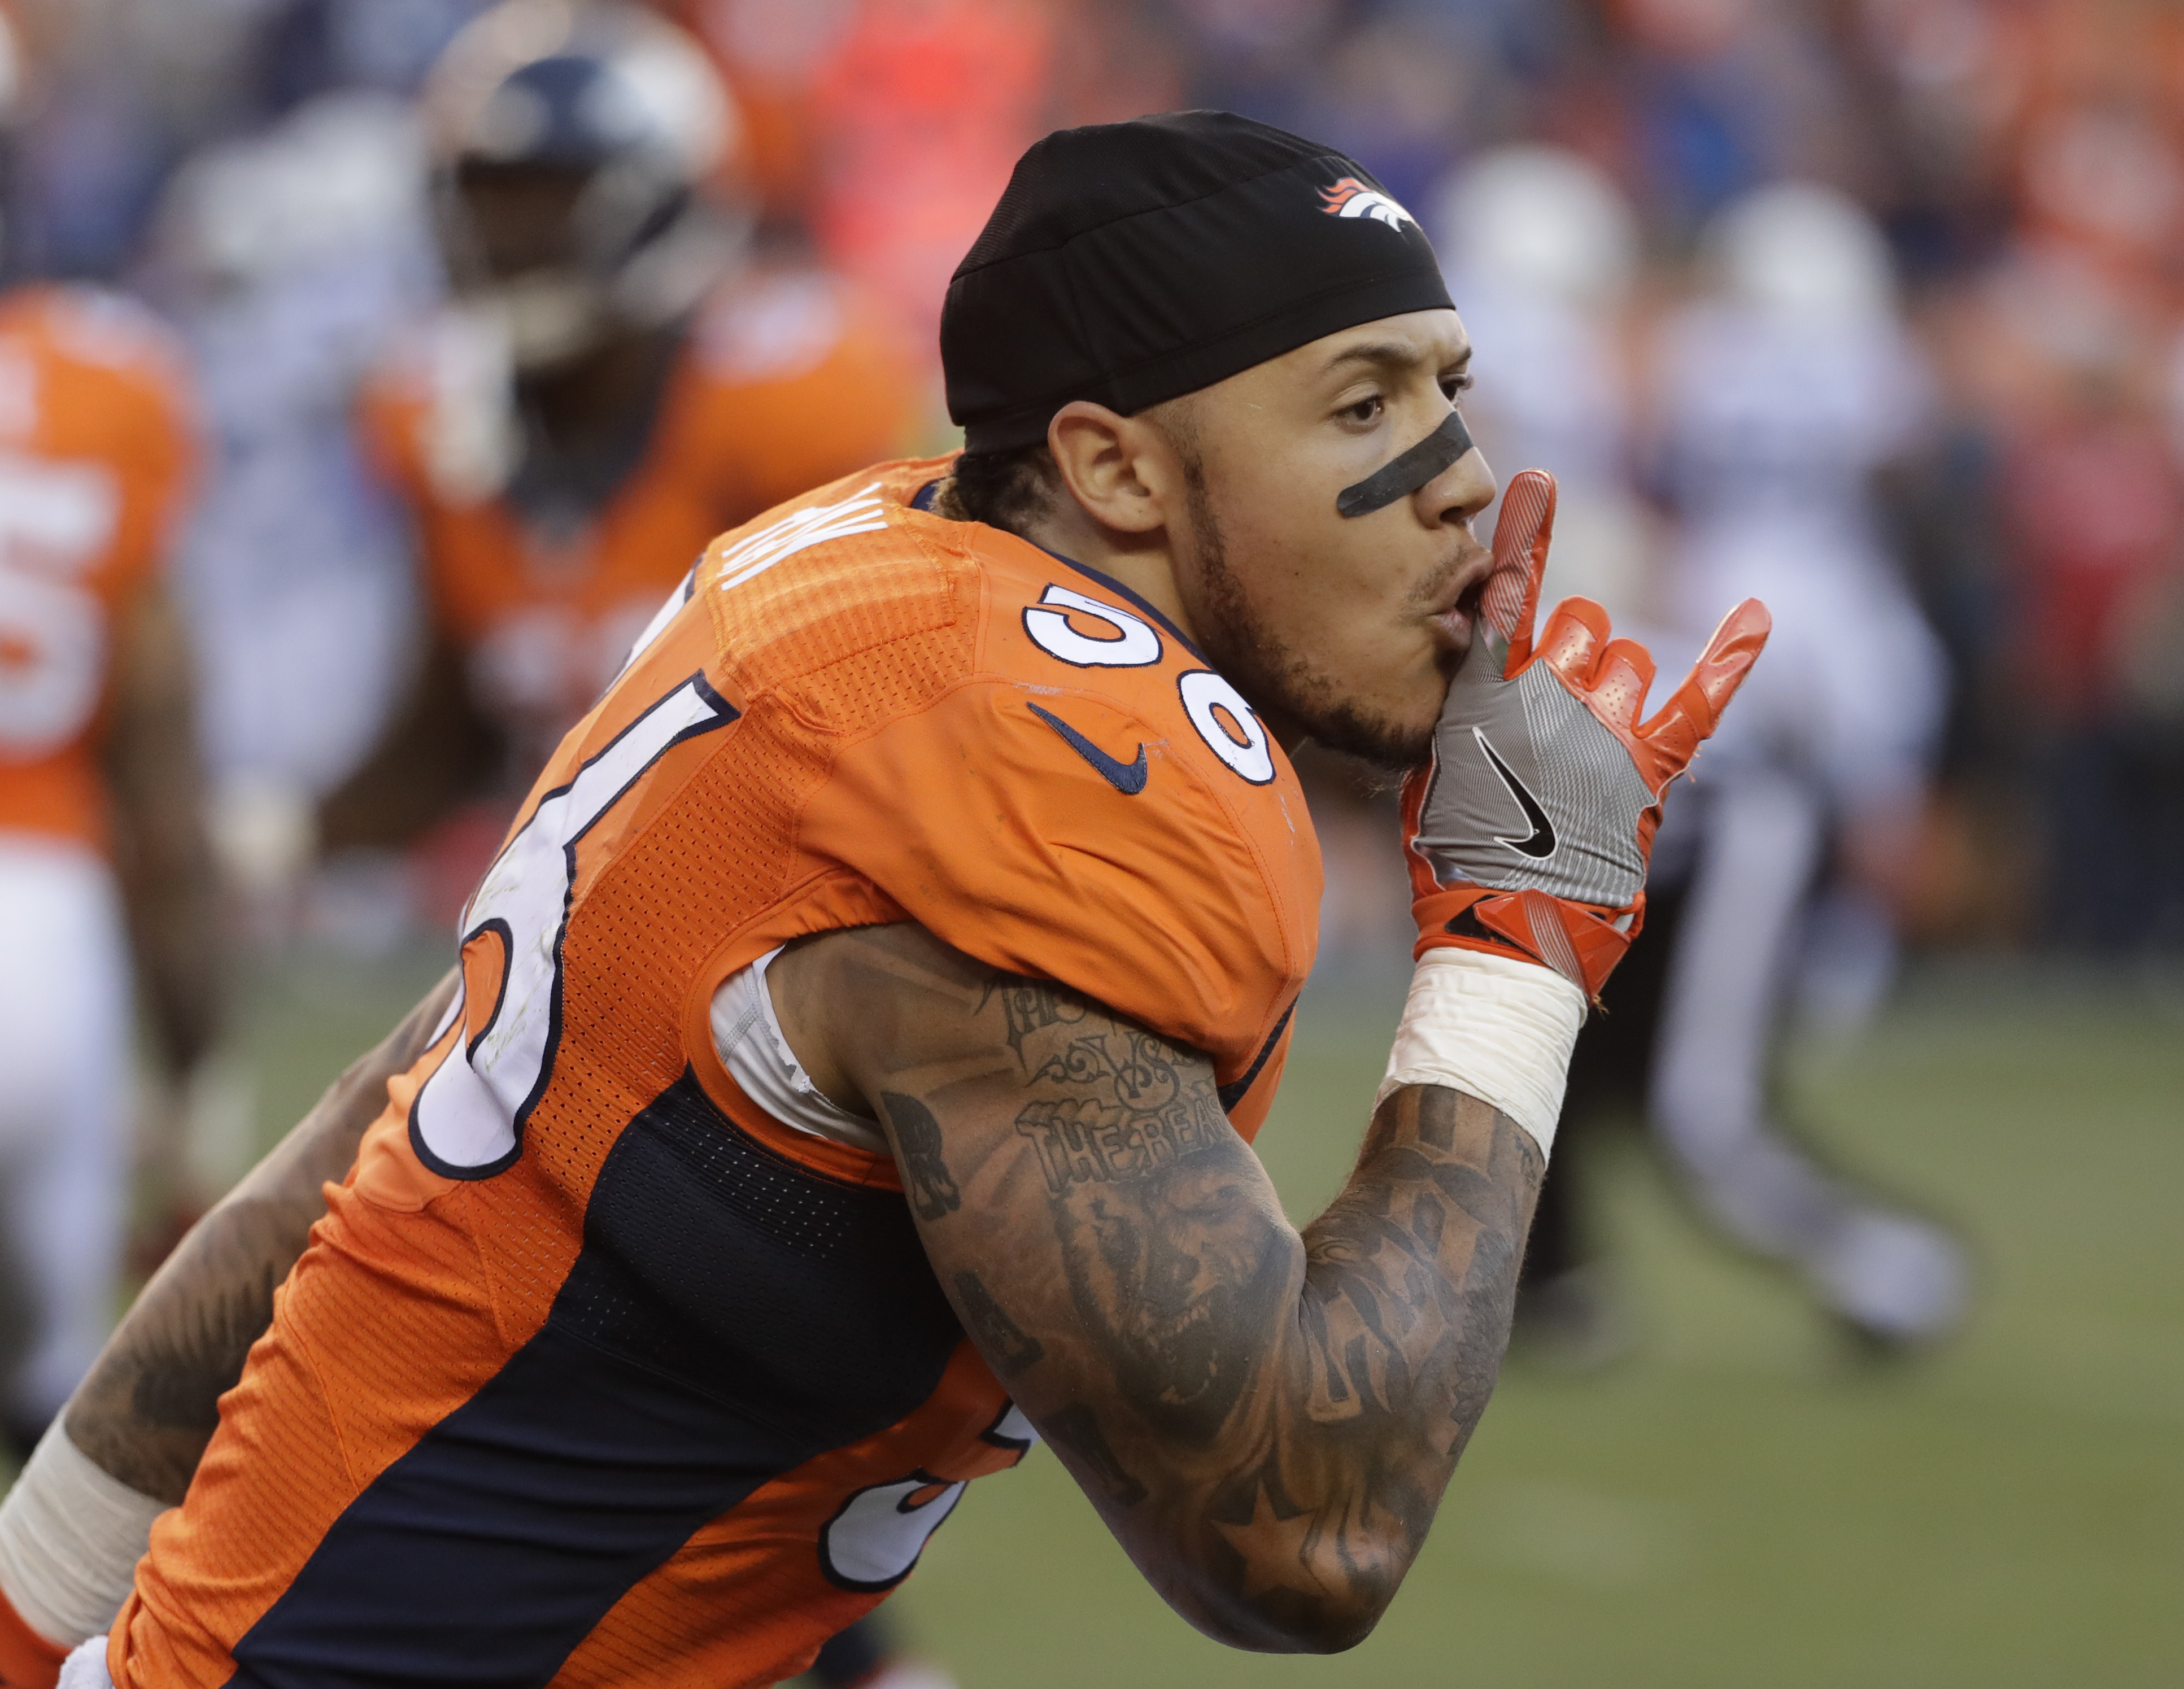 Denver Broncos linebacker Shane Ray celebrates after scoring during the second half in an NFL football game against the Indianapolis Colts, Sunday, Sept. 18, 2016, in Denver. (AP Photo/Jack Dempsey)